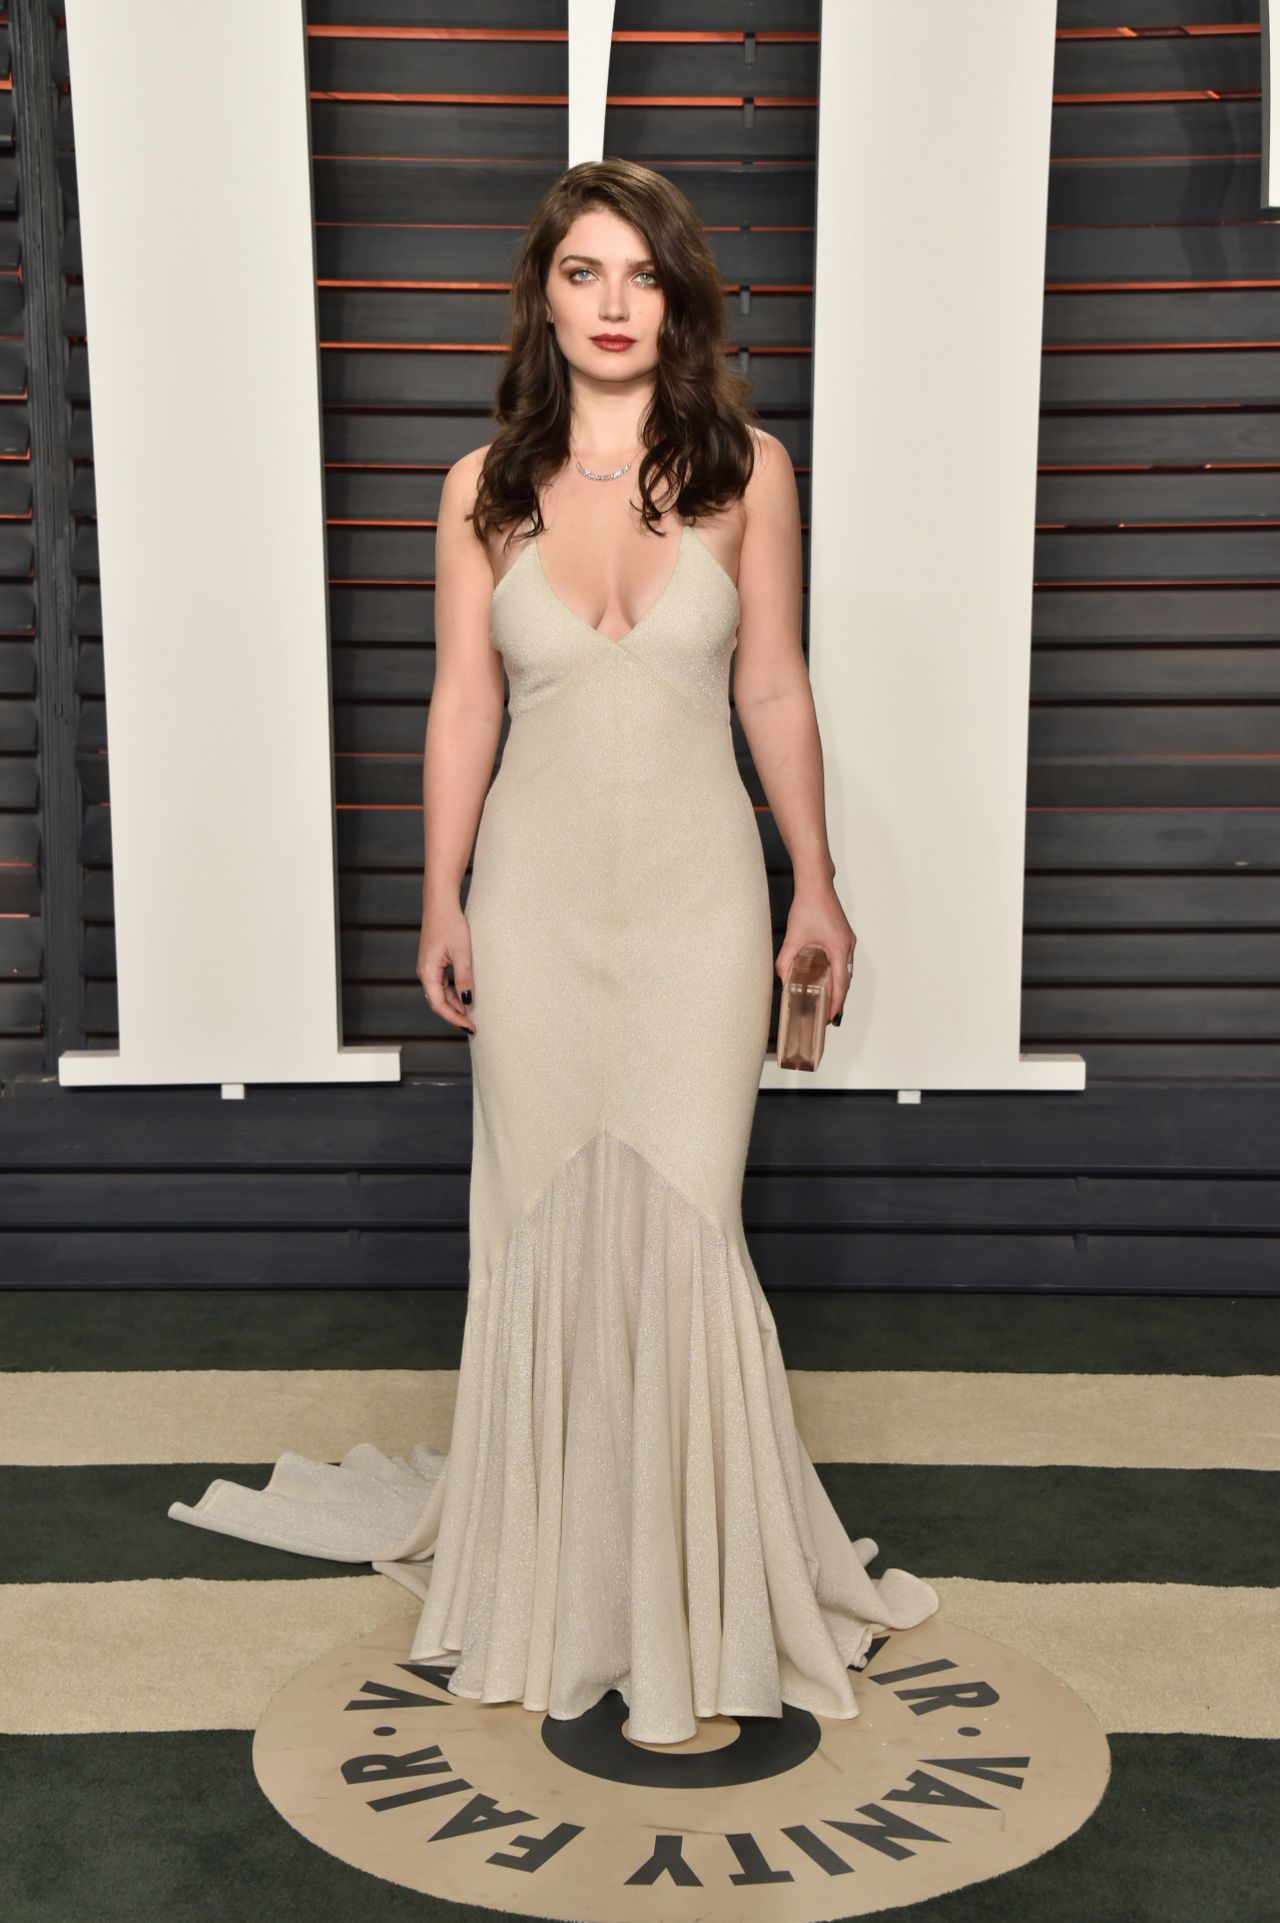 eve-hewson-vanity-fair-oscar-2016-party-in-beverly-hills-ca-1